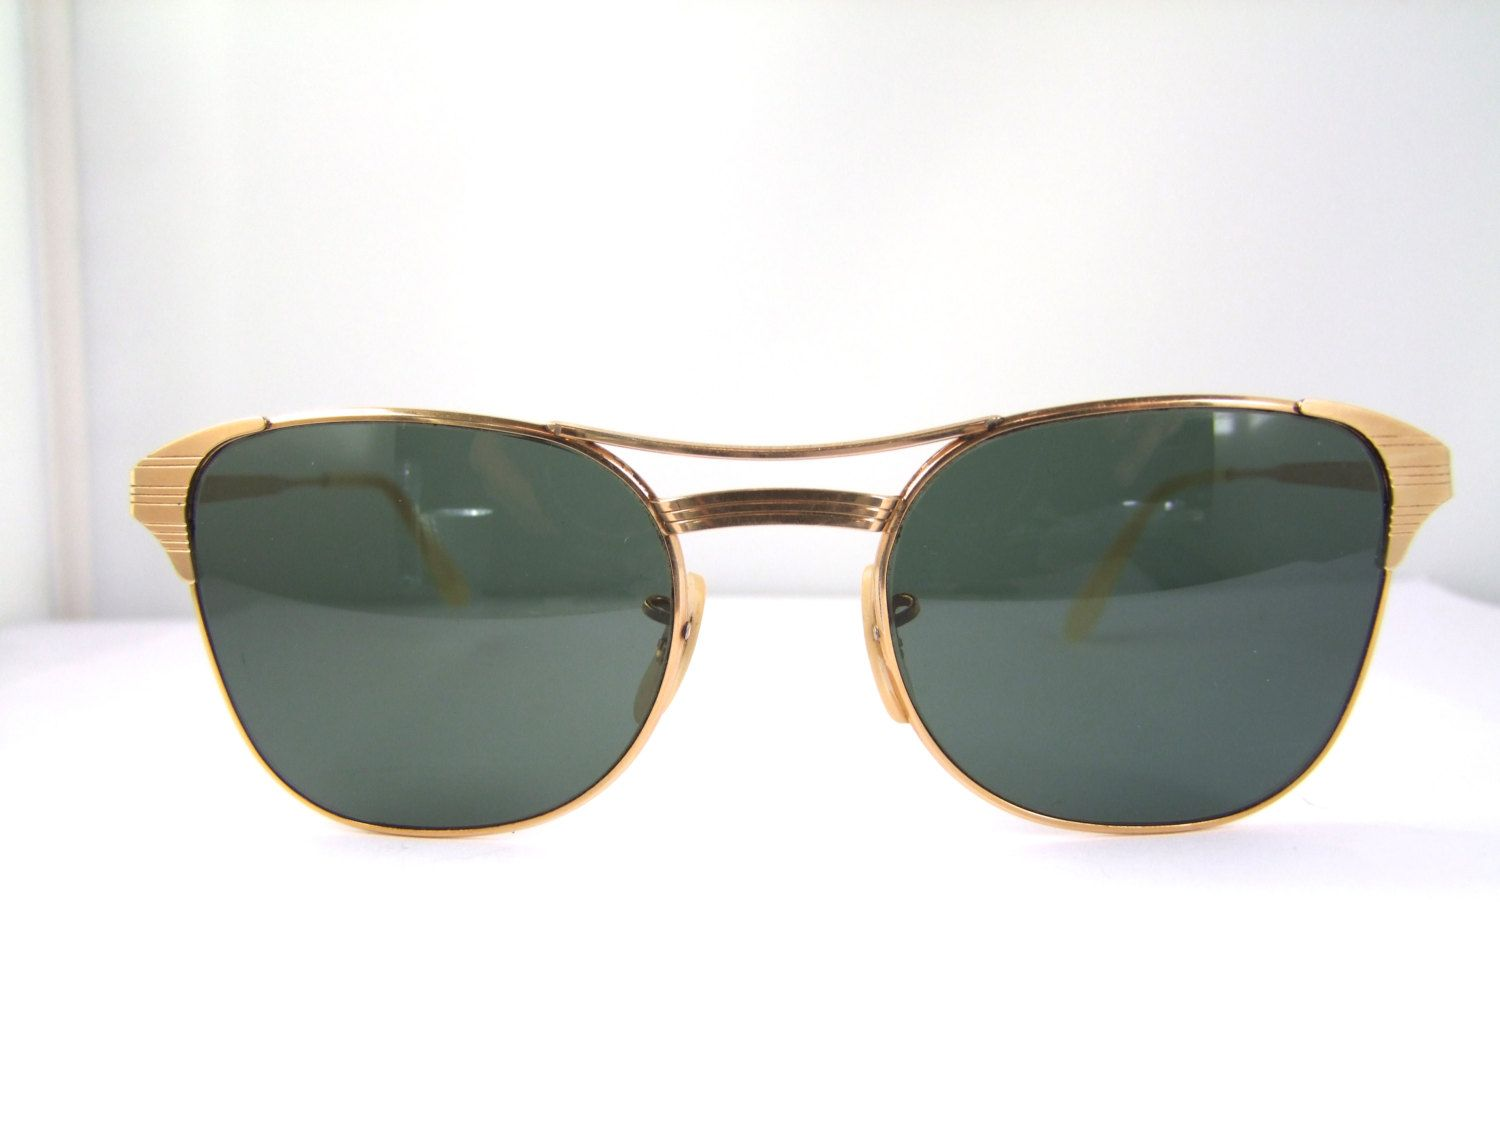 ray ban sunglasses made in usa  1960s Gold filled Vintage Ray Ban Signet Made in USA /ray ban ...